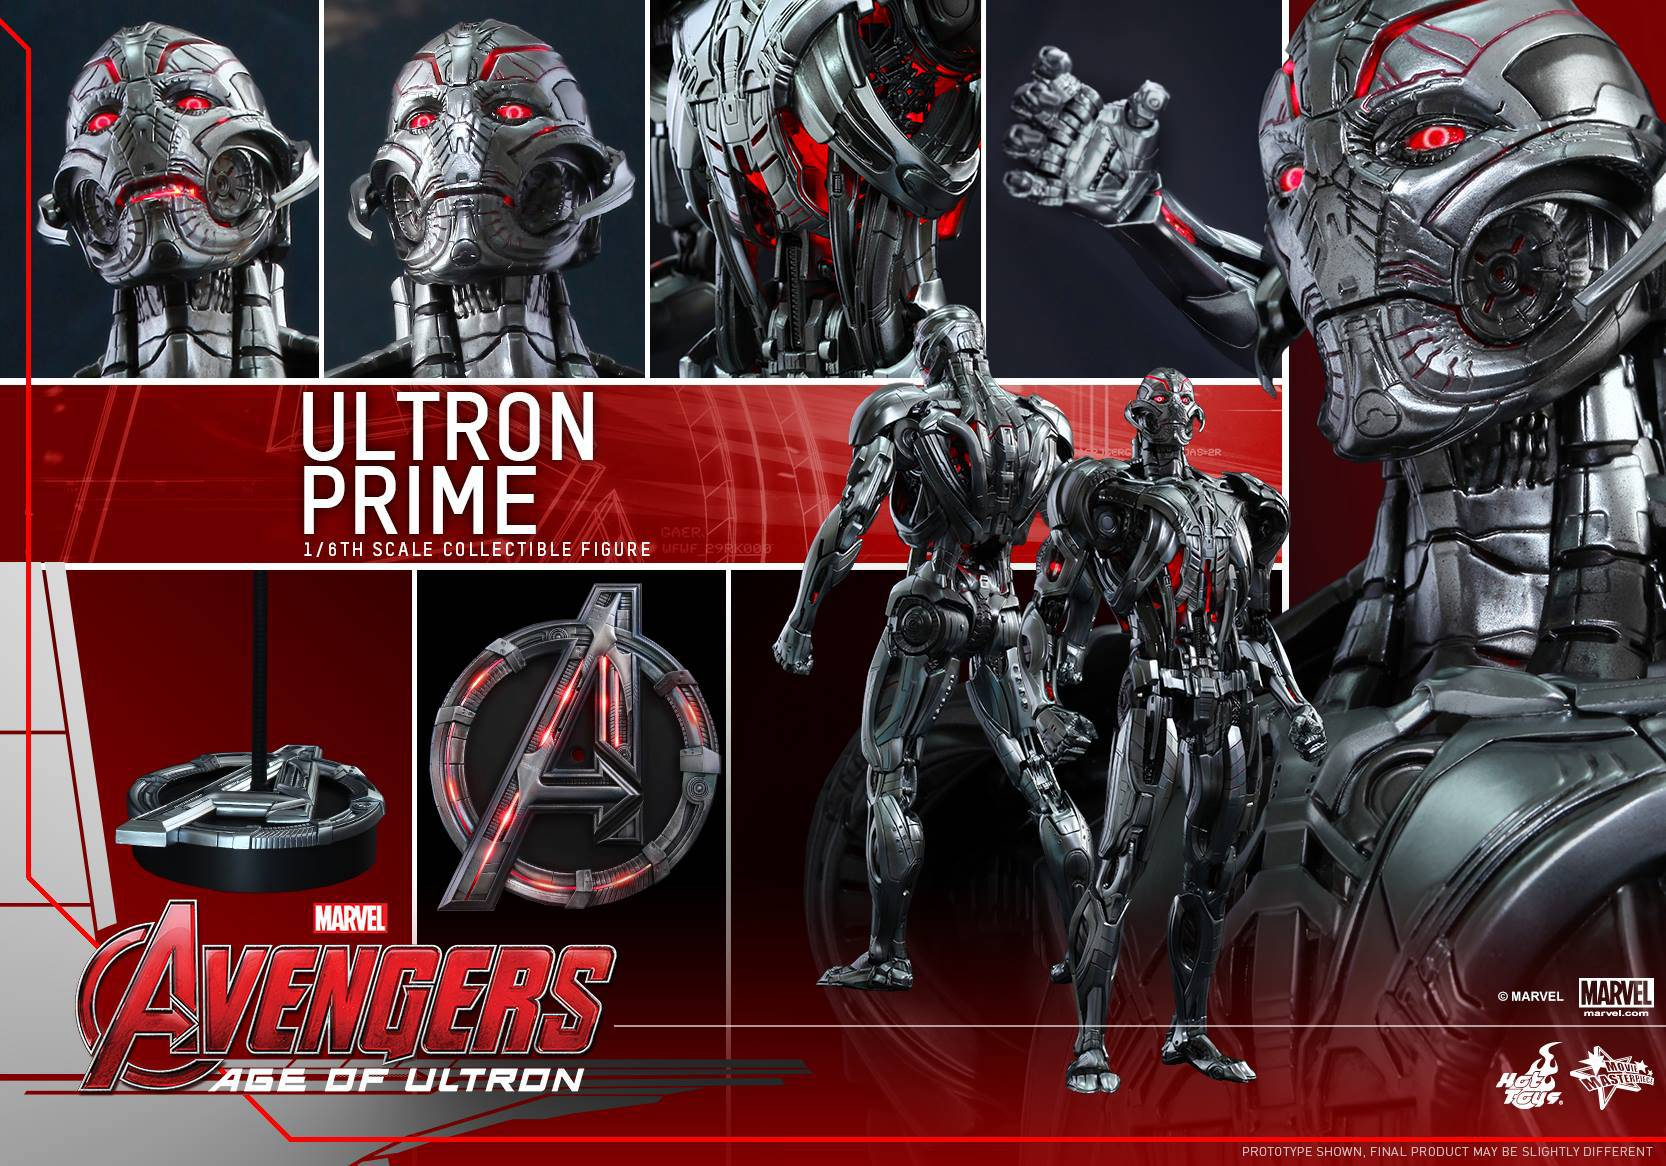 avengers_age_of_ultron_2015_movie-wide2